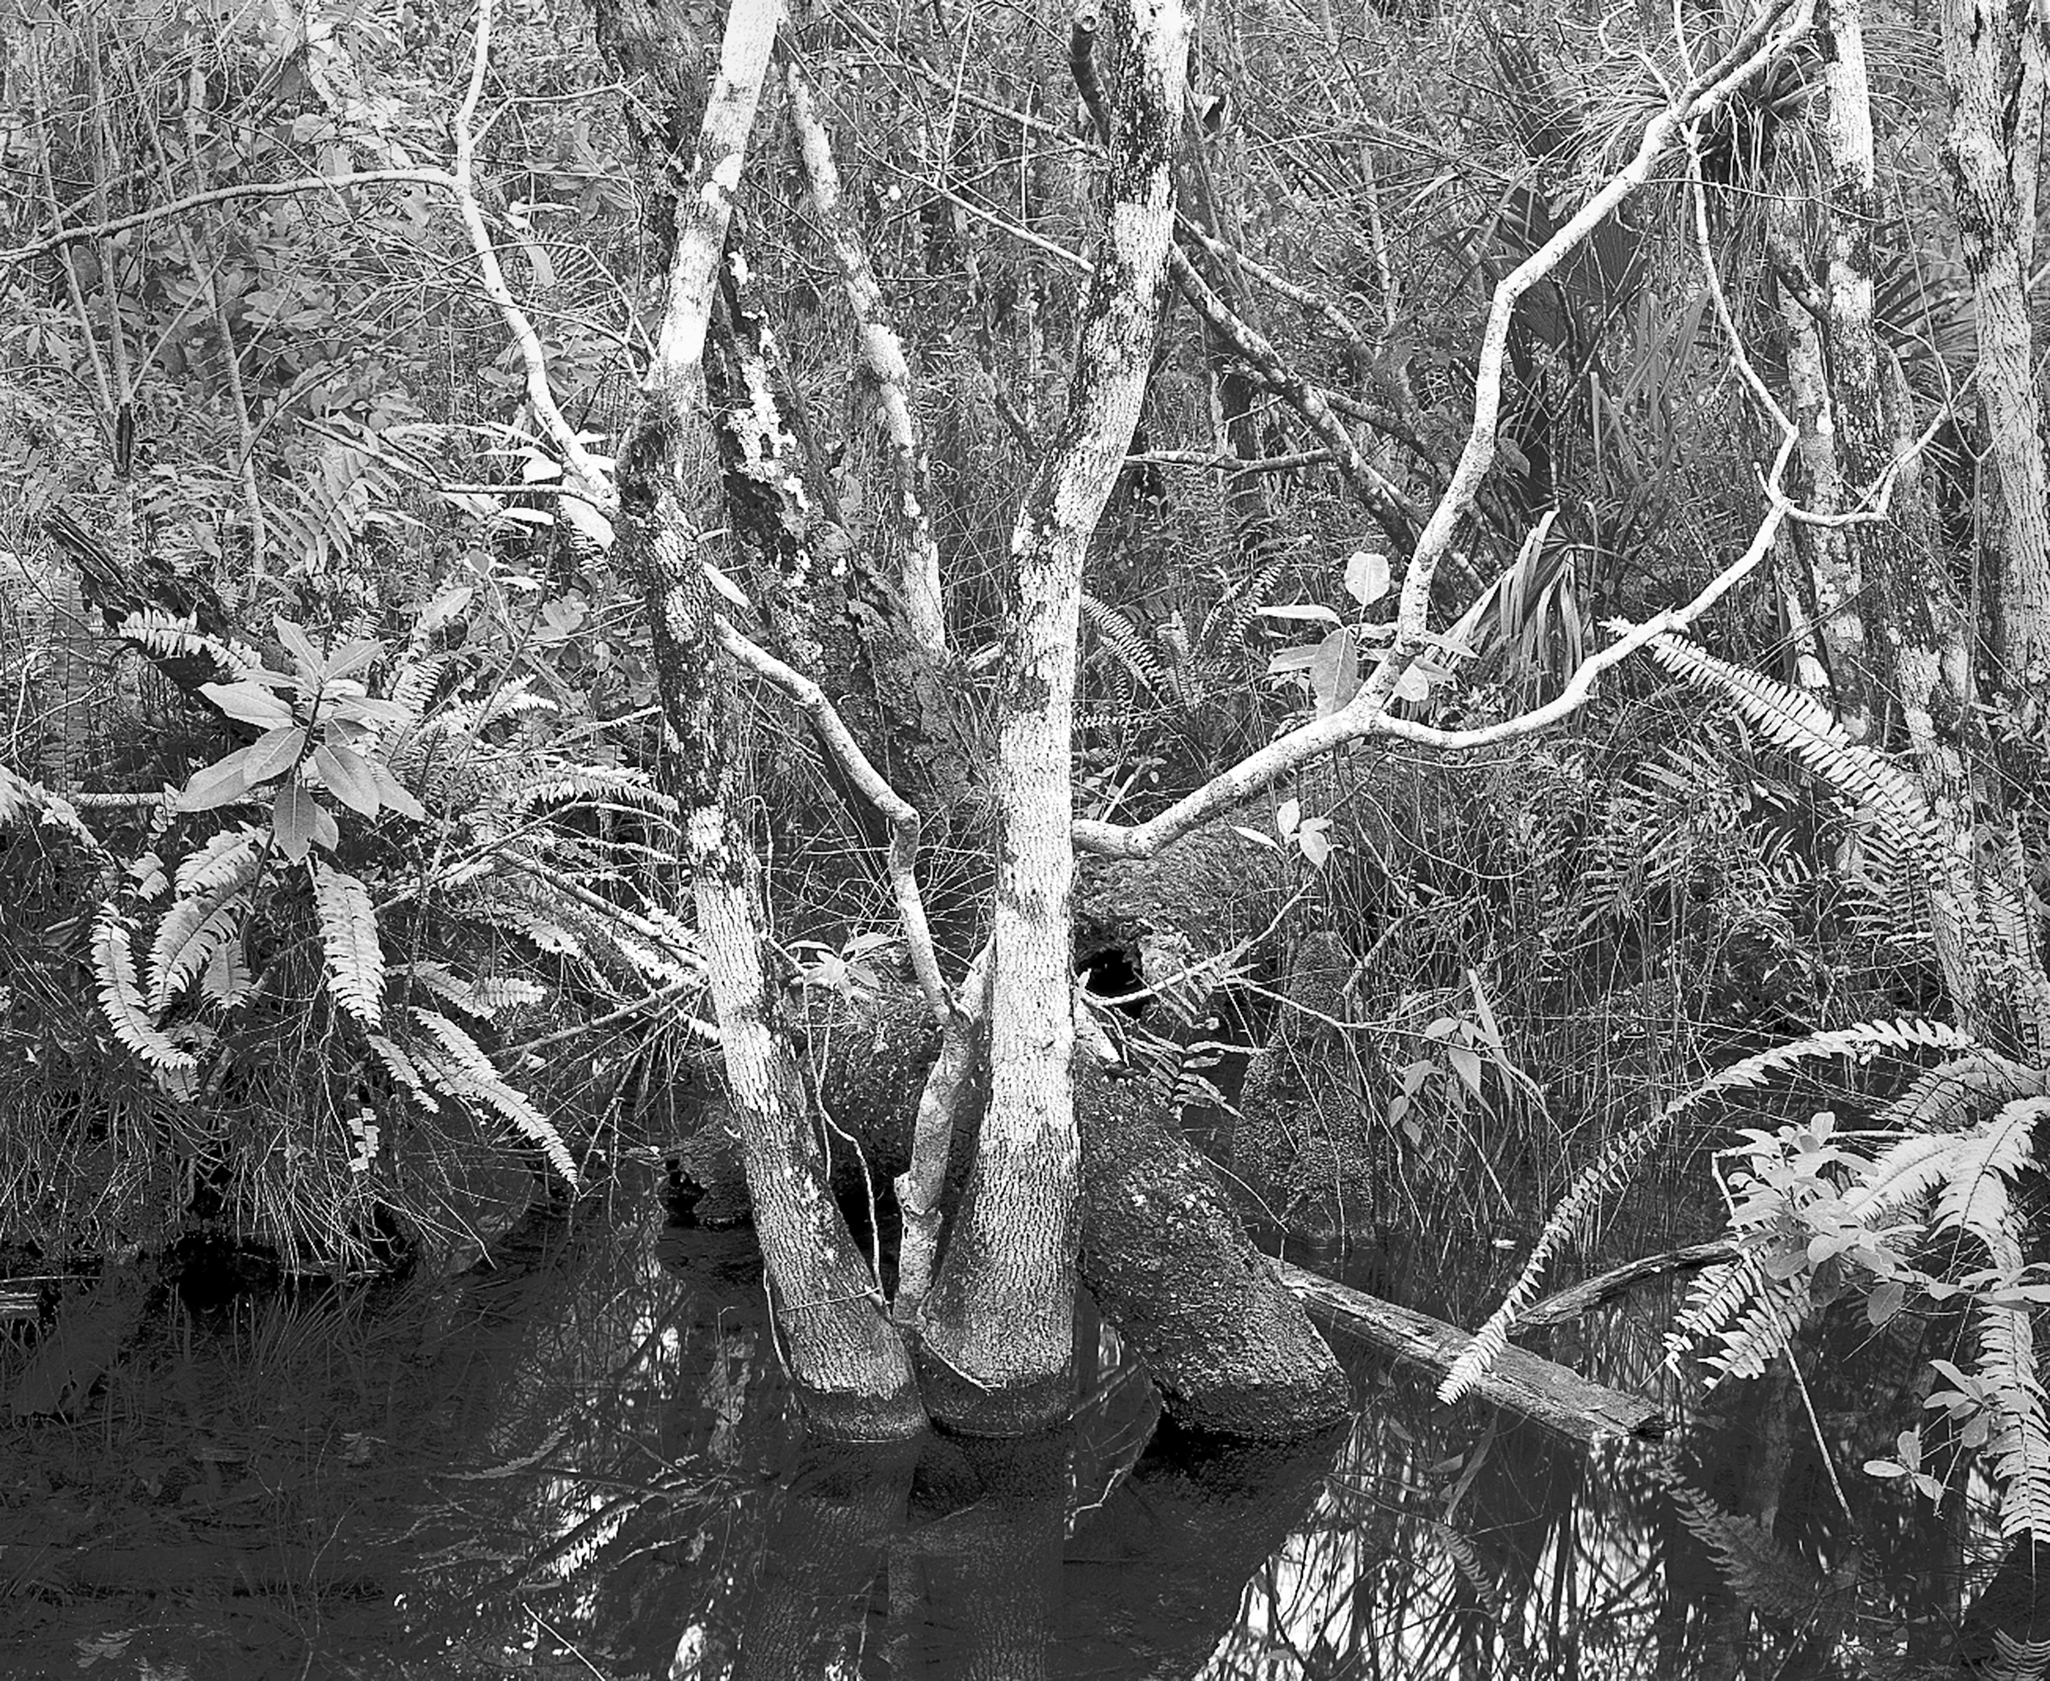 Trees and Ferns, Loxahatchee